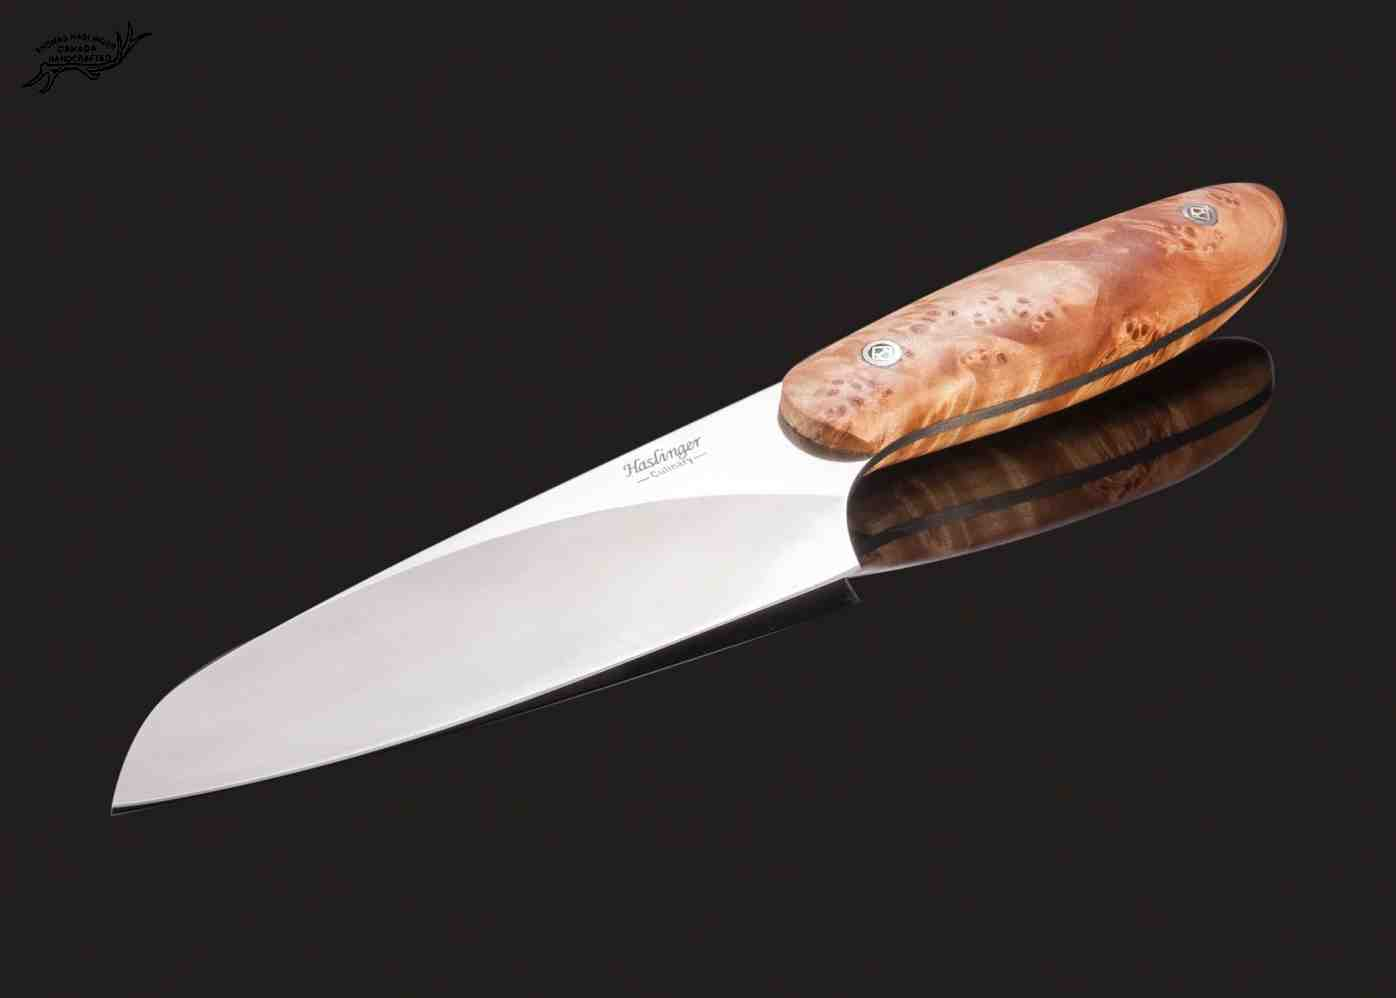 Evolution Chef Knife 142 mm Blade with Blond Maple Burl Handle